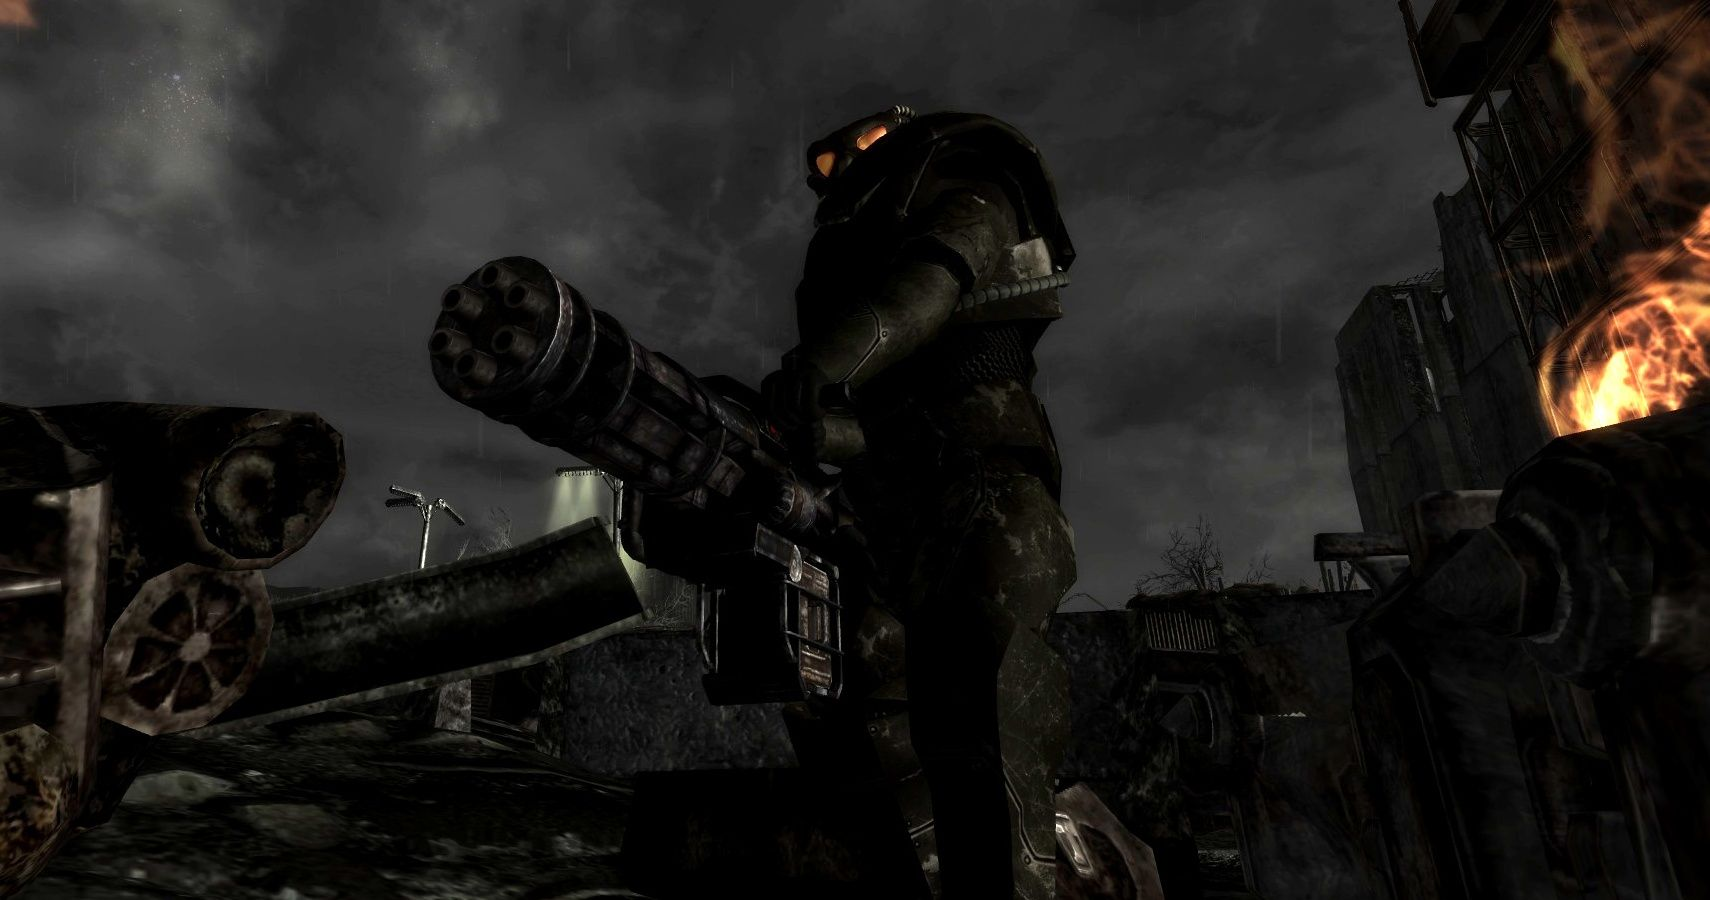 10 Fallout 3 Mods That Make The Game Even Better Thegamer